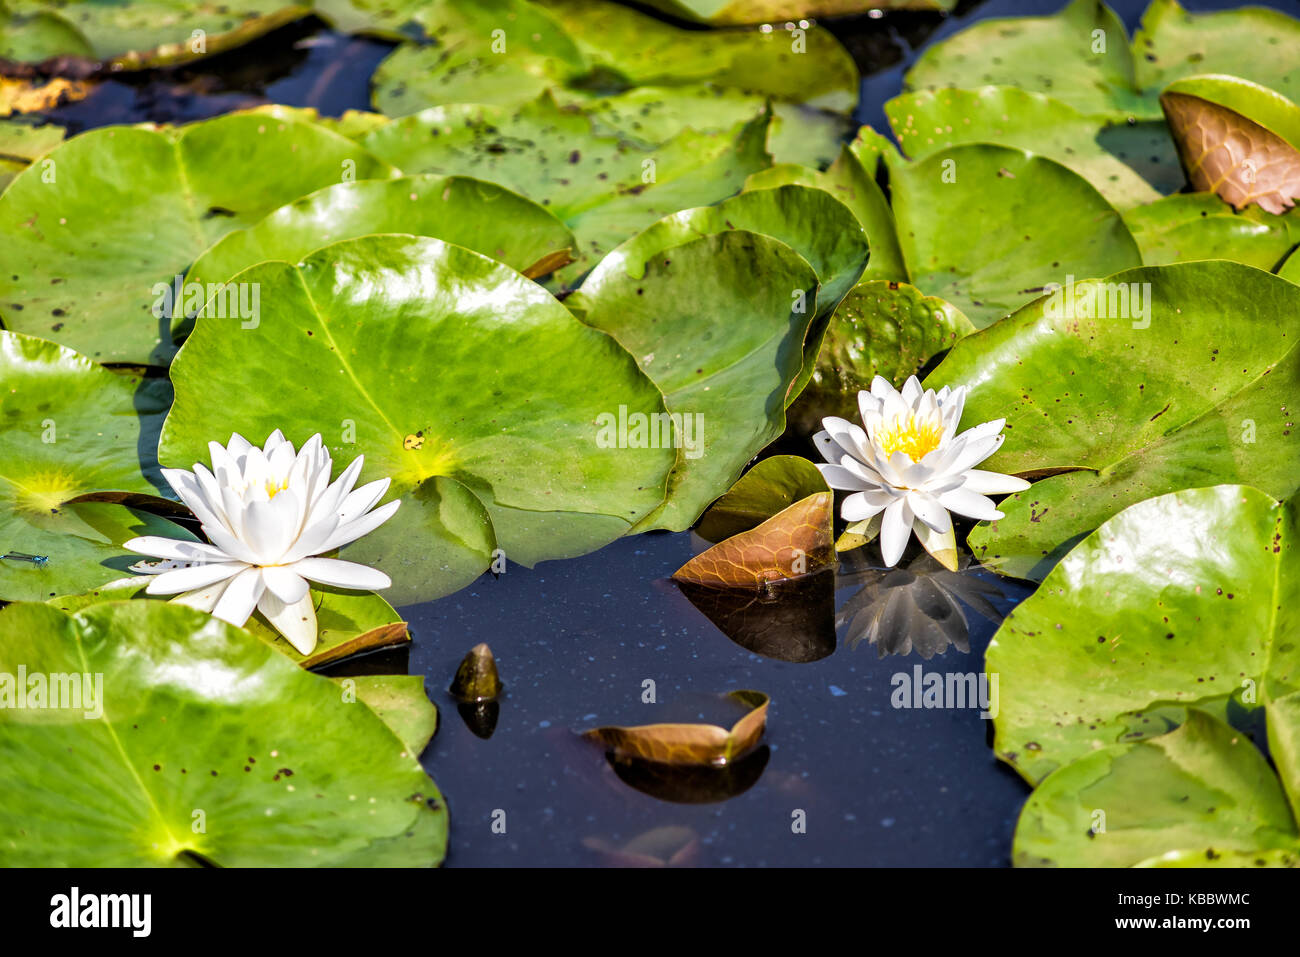 Closeup of two blooming white bright lily flowers with pads in pond Stock Photo